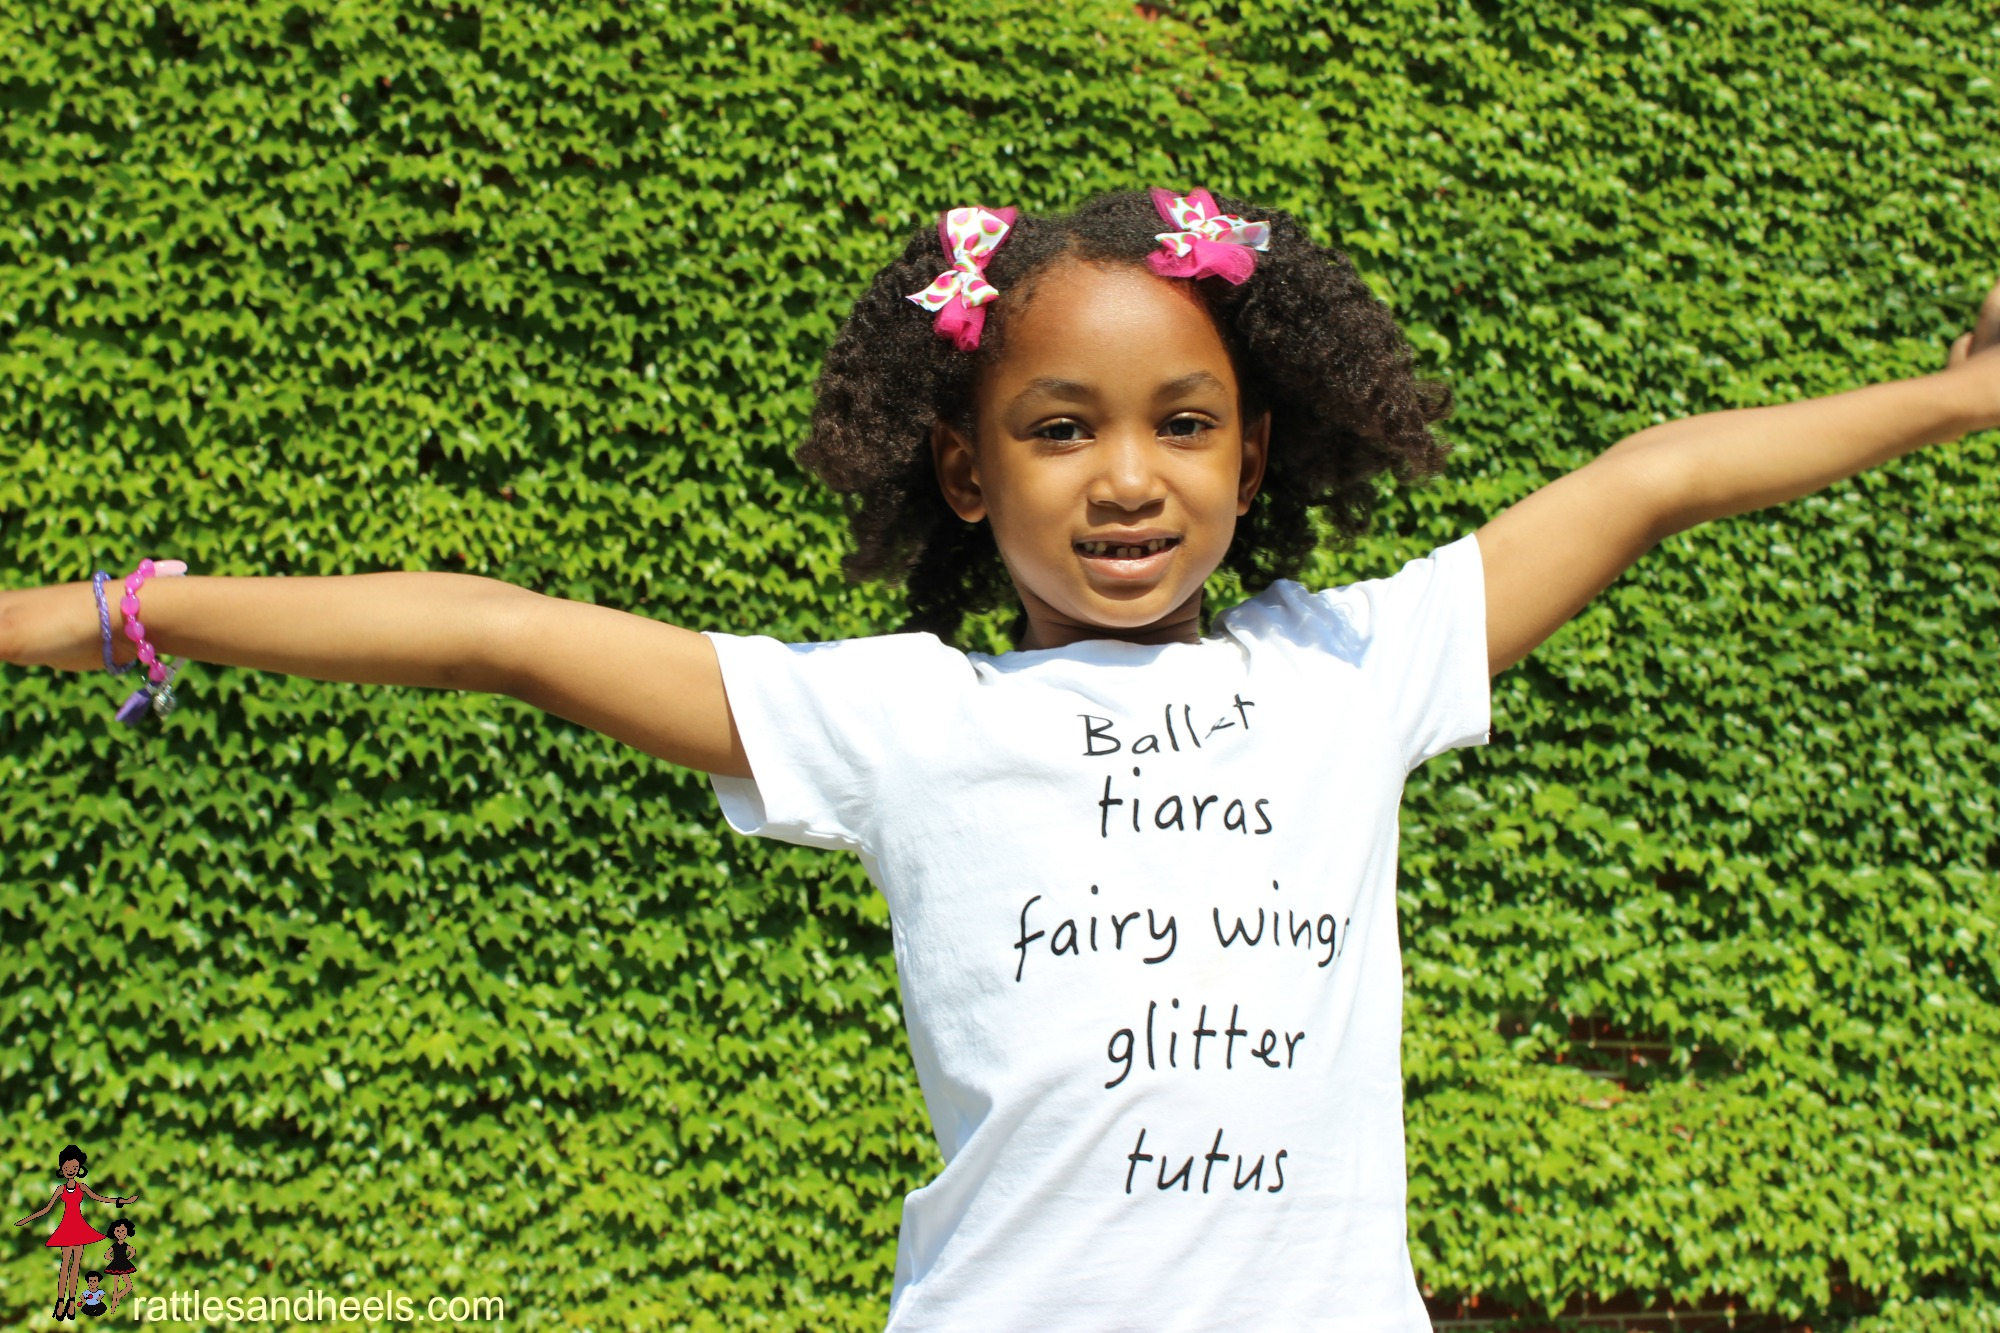 Rattles and heels-children-tee-shirts